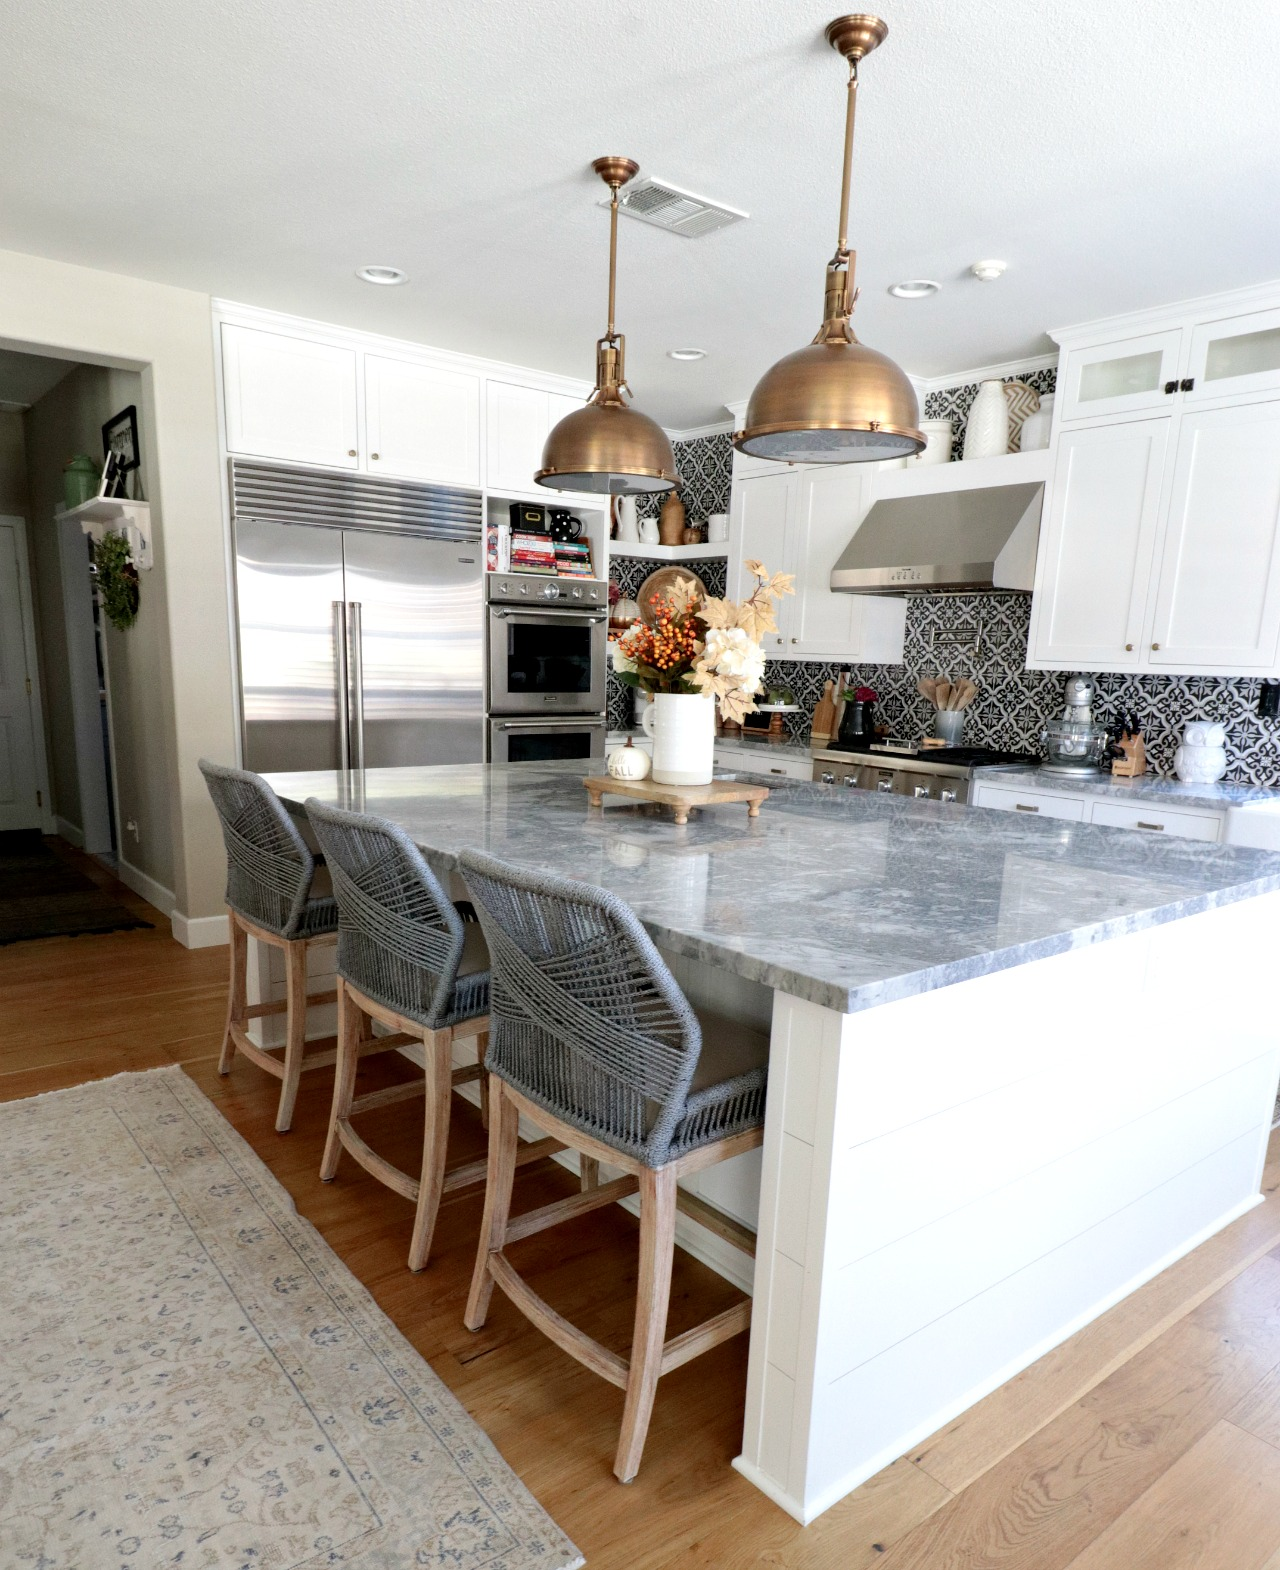 Hello And Thanks For Stopping By The Blog!! I Have Recently Gotten A Lot Of  Questions About My Kitchen So I Thought I Would Do A Blog Post All About My  ...